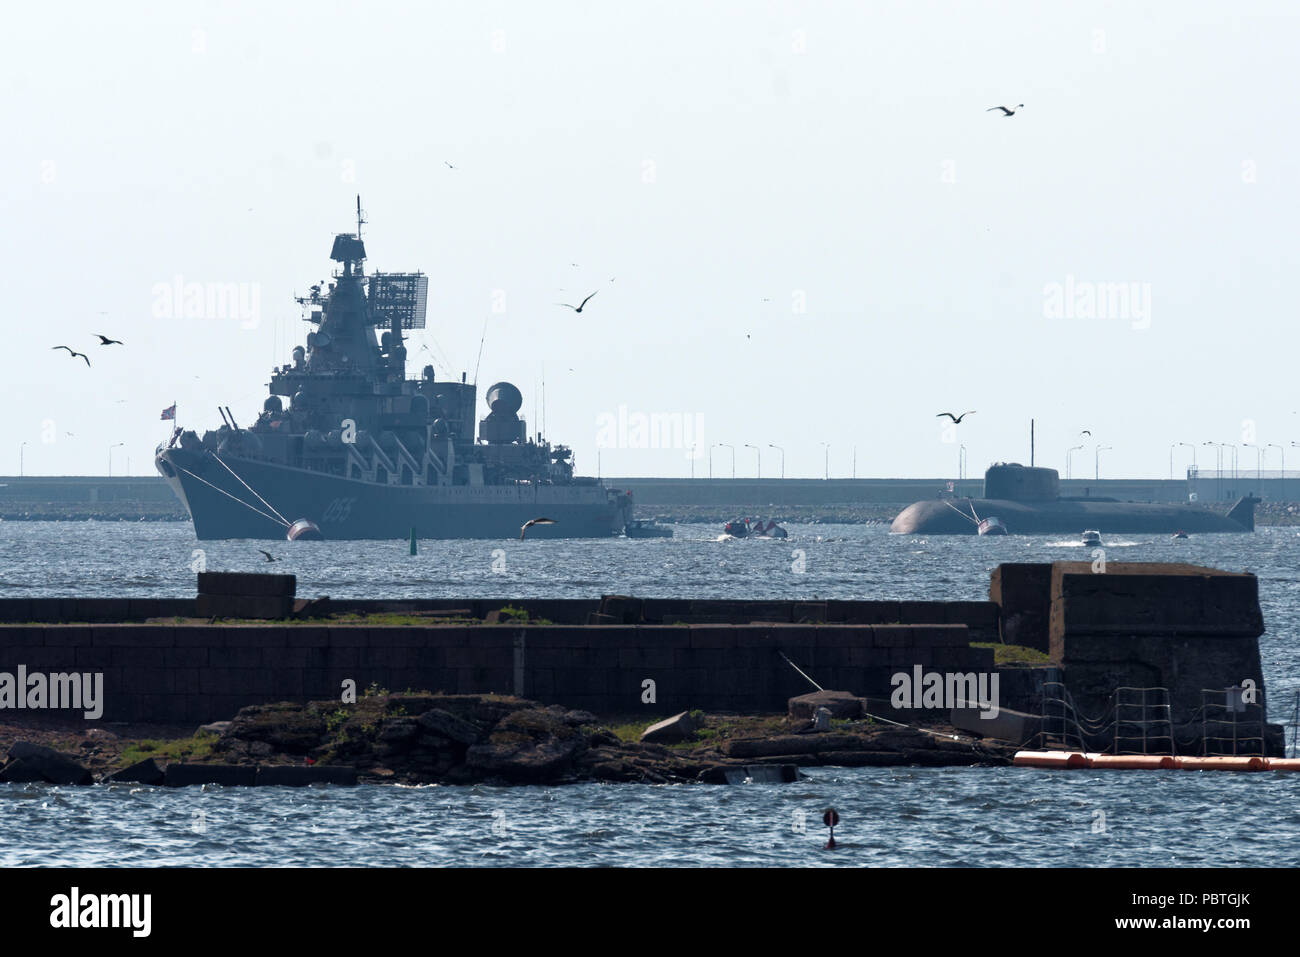 Kronstadt, St. Petersburg, Russia - July 28, 2018: Guided missile cruiser Marshal Ustinov and nuclear-powered submarine Orel anchored in Kronstadt bef - Stock Image